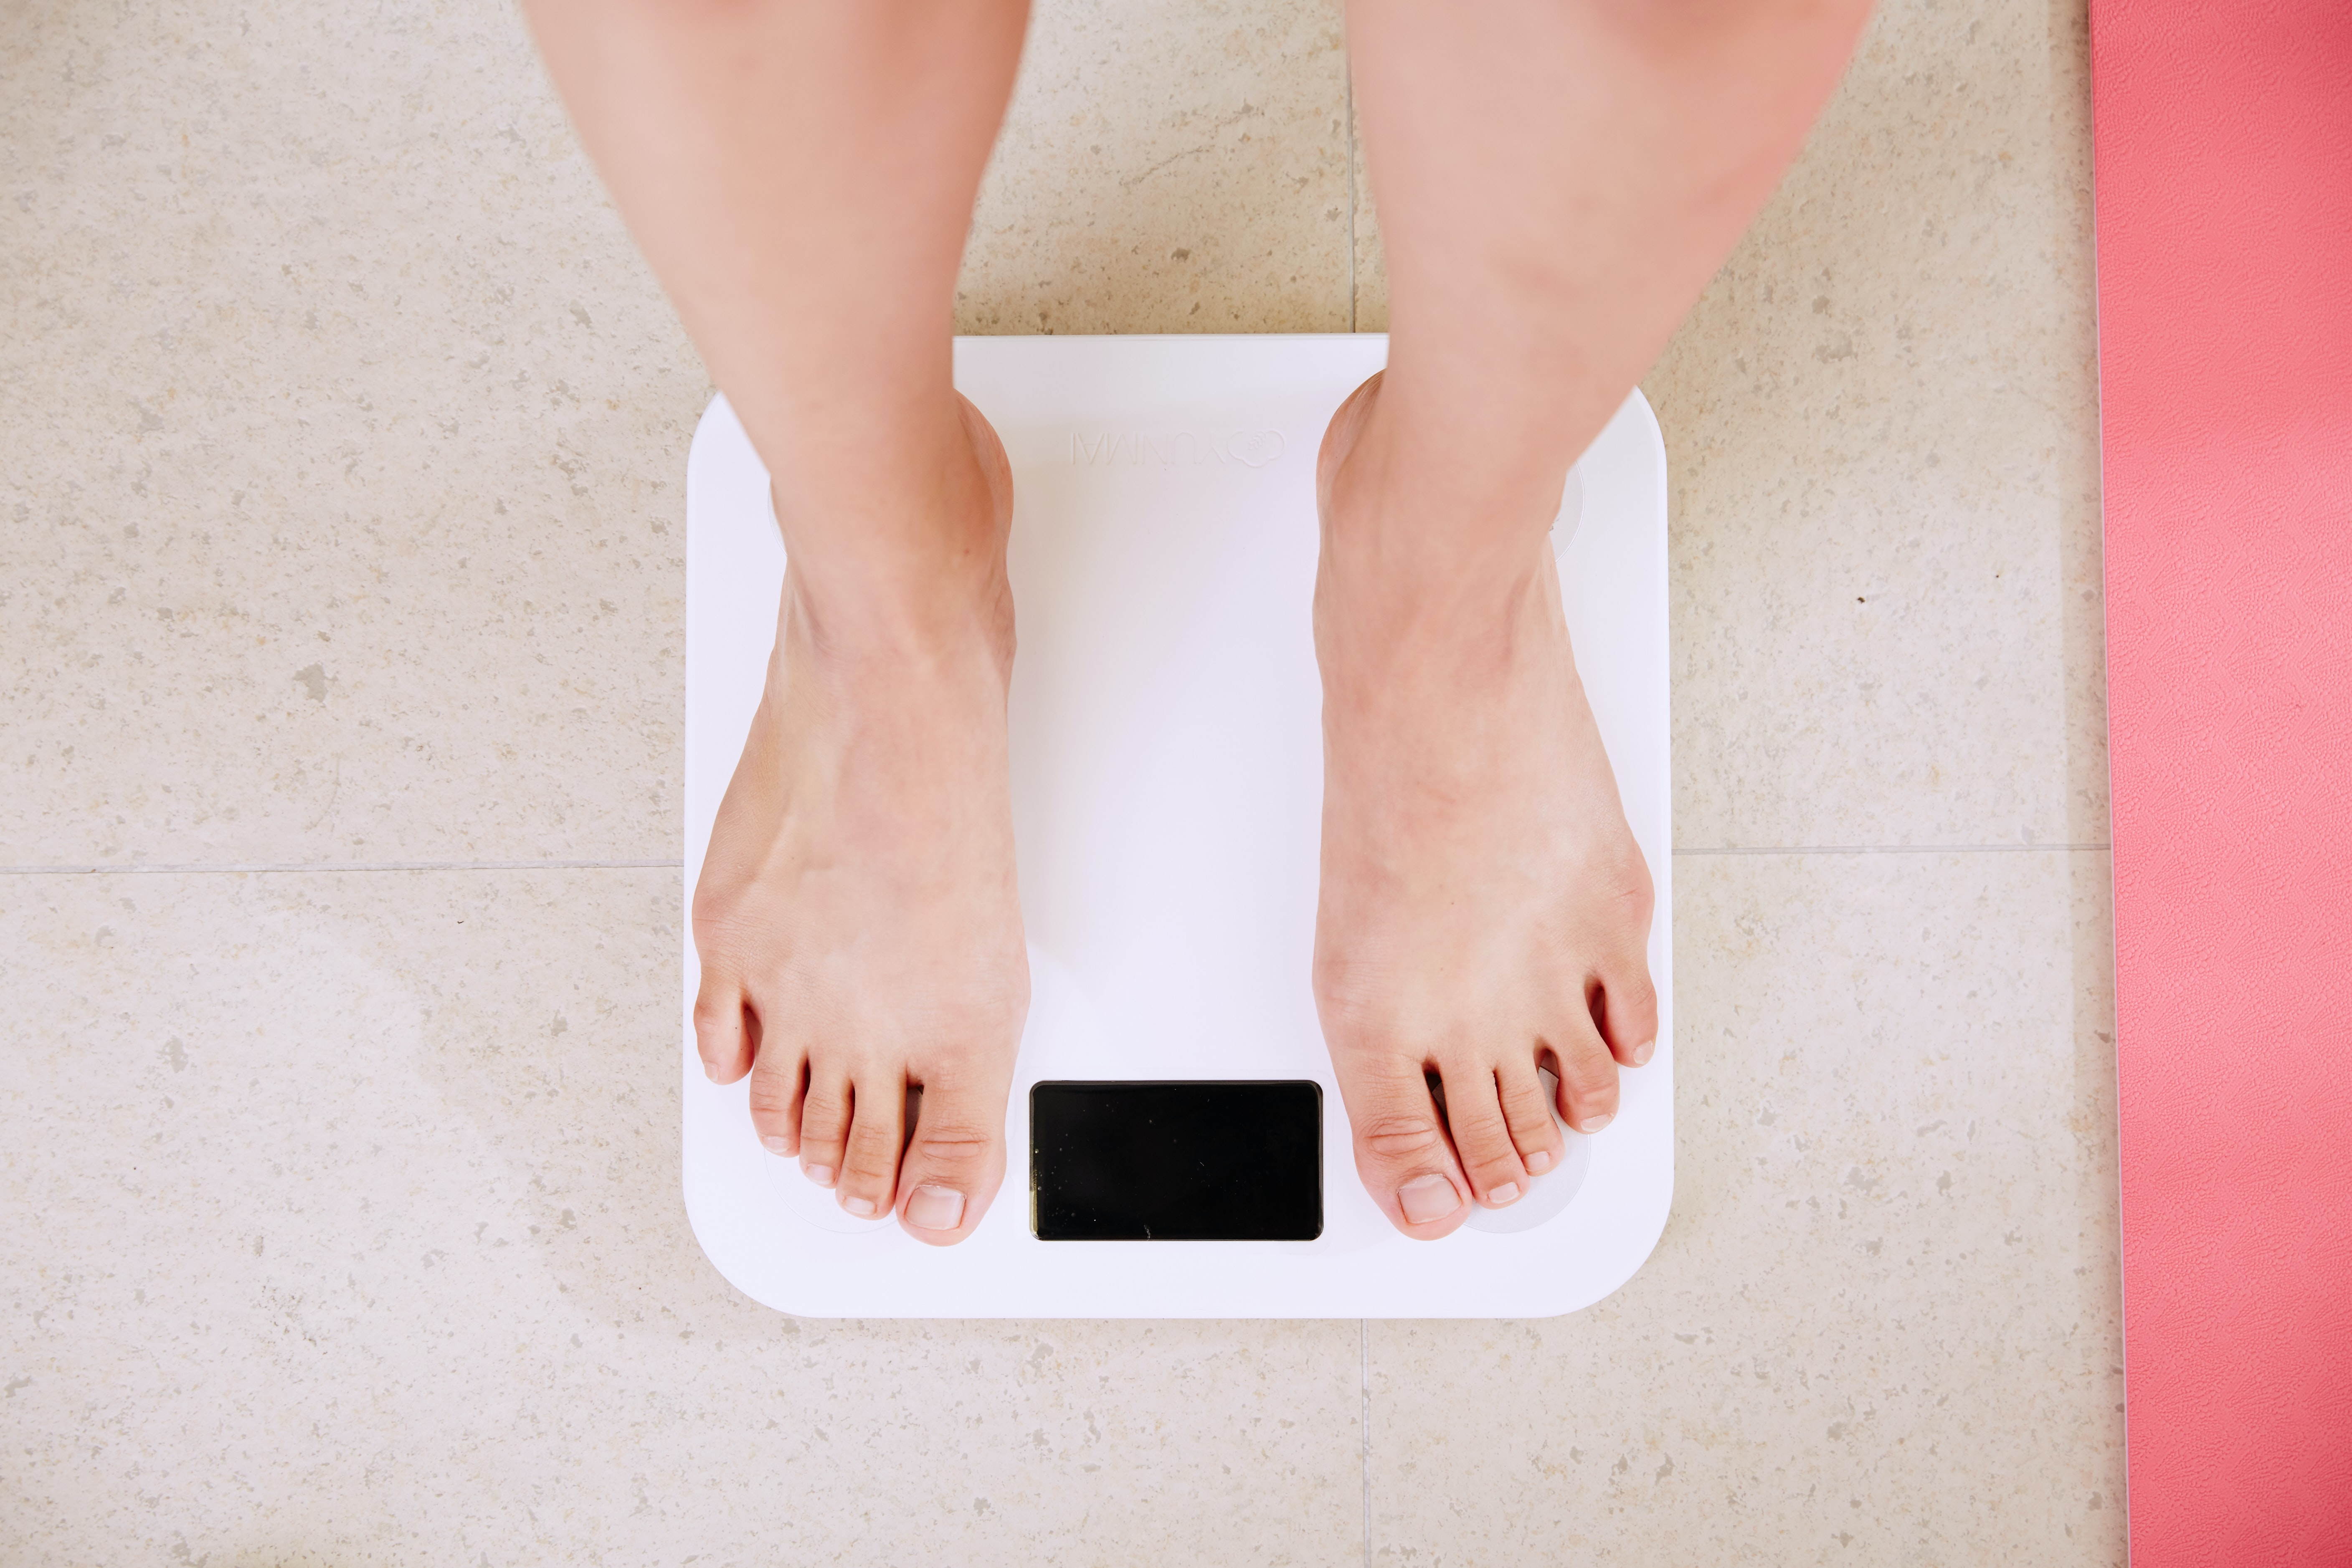 Obesity Clinic in pune